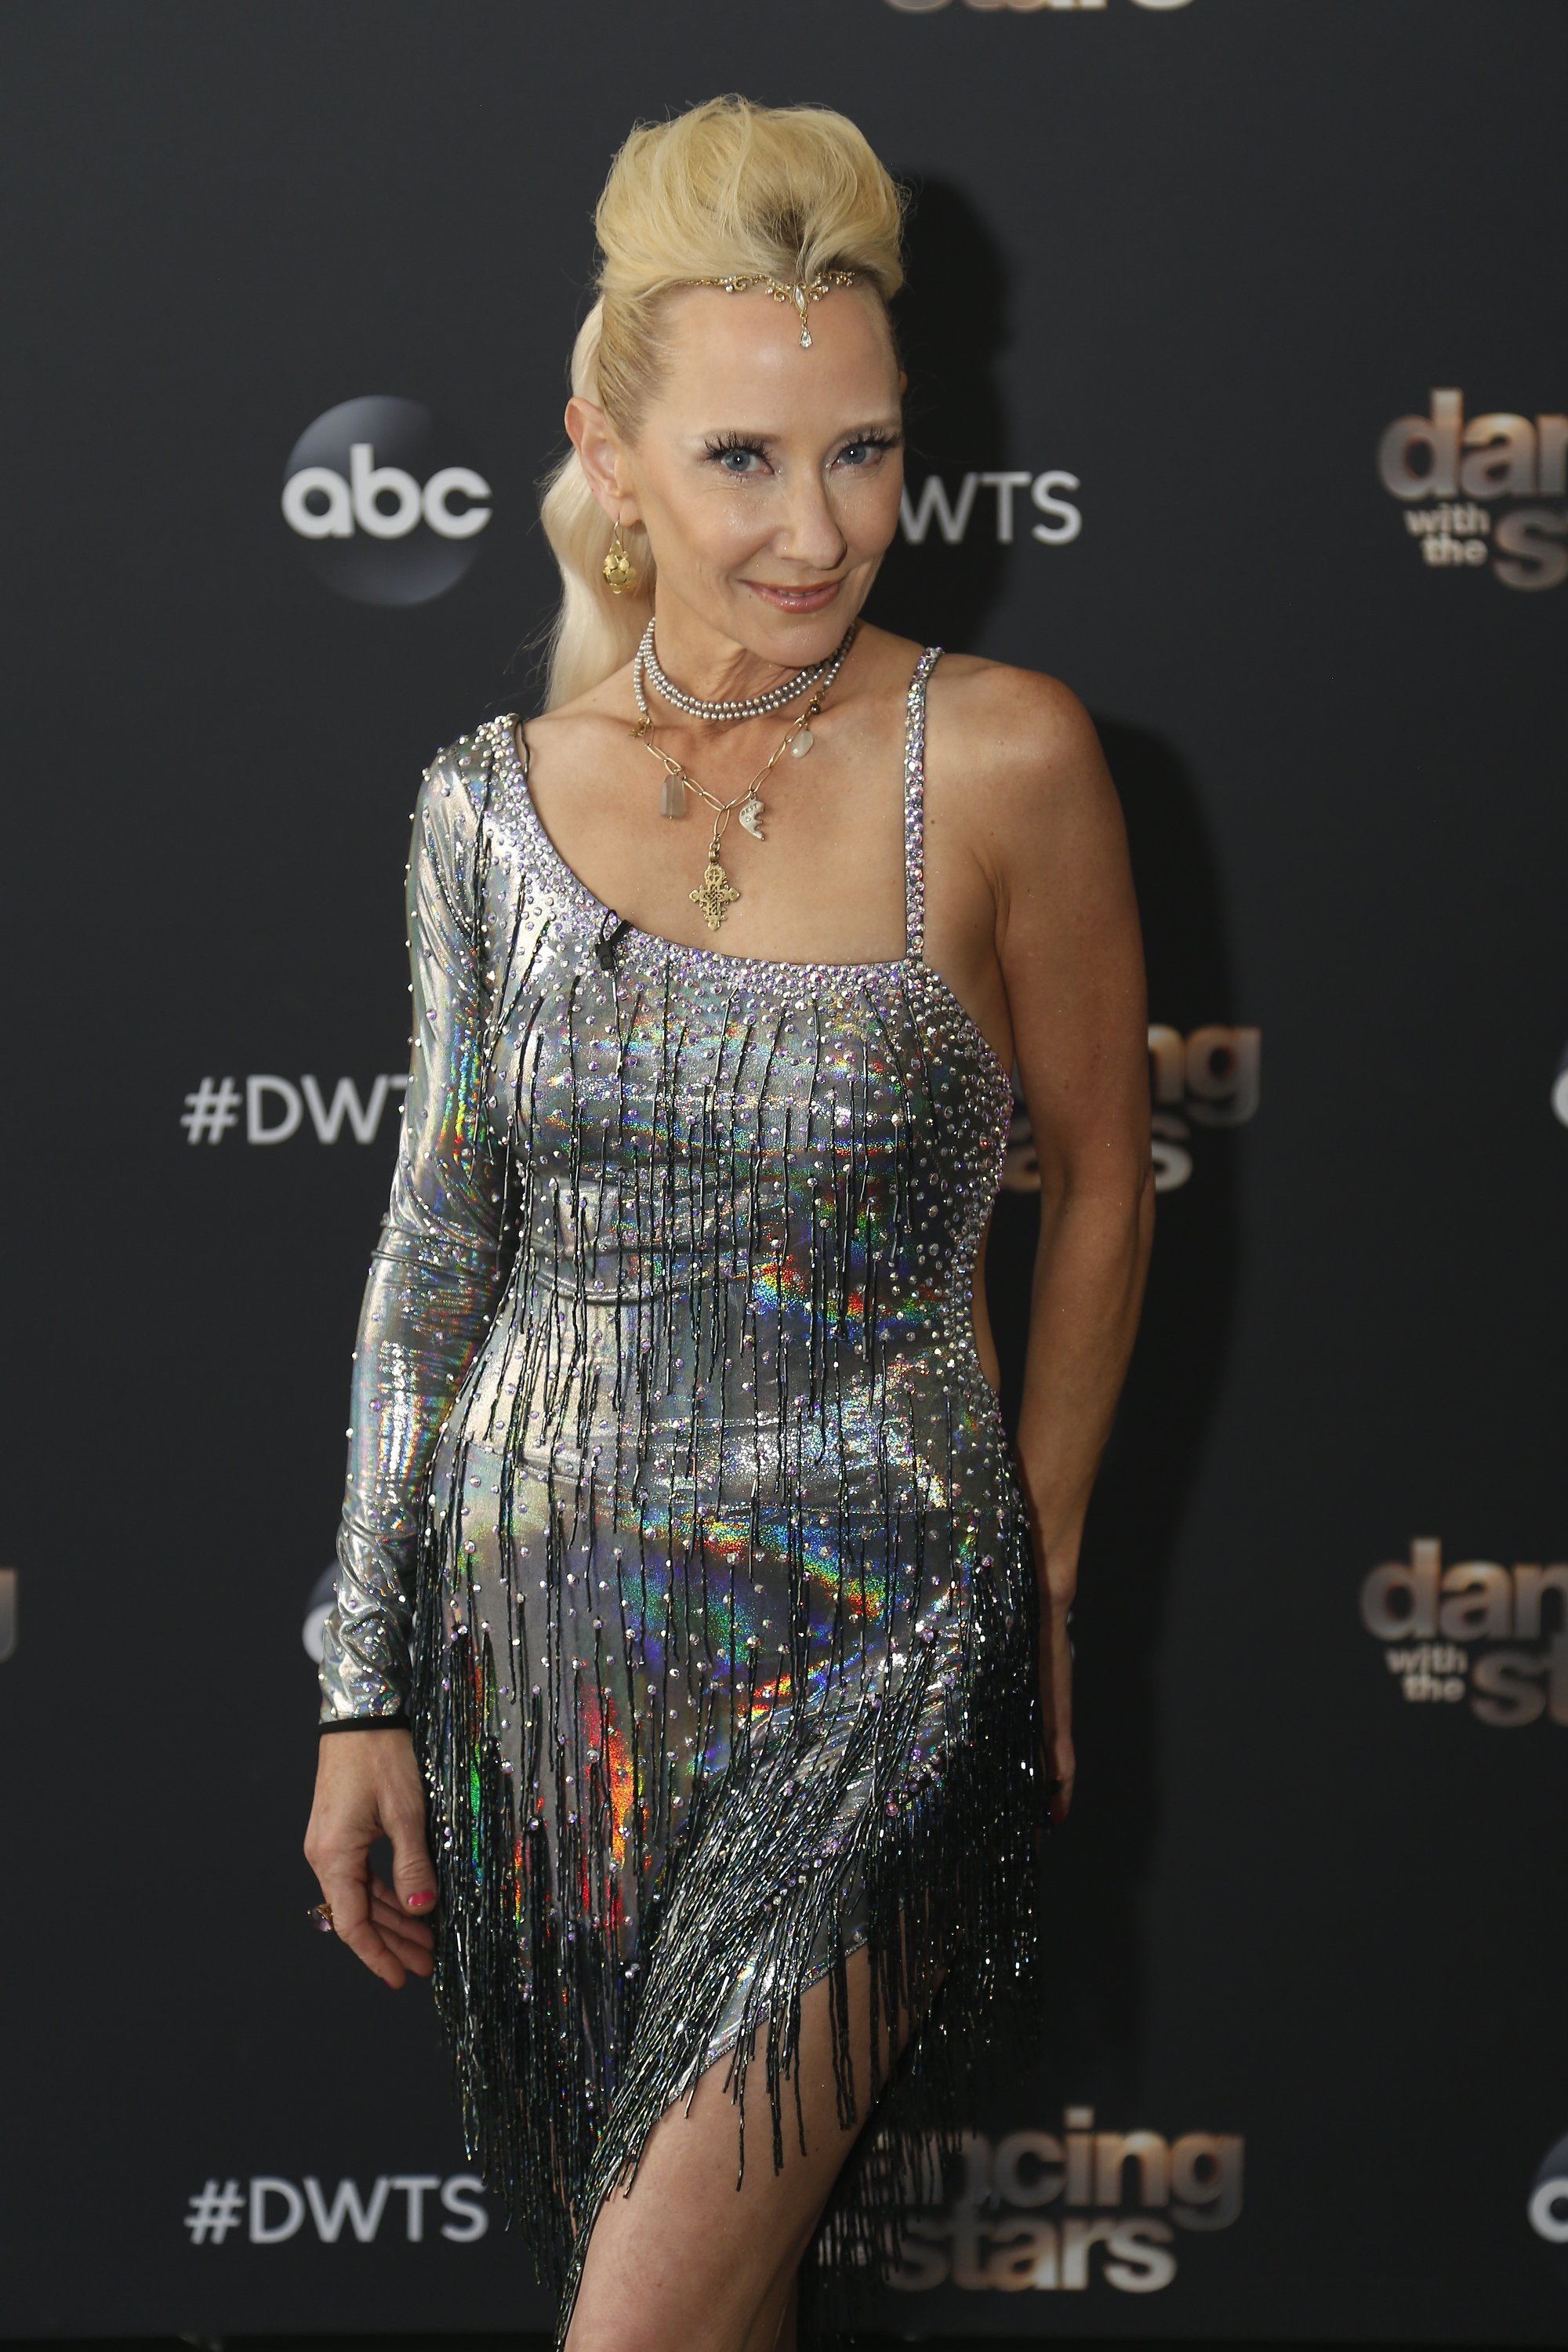 """Anne Heche pictured during her participation in season 29 of """"Dancing With the Stars"""" on September 14, 2020. 